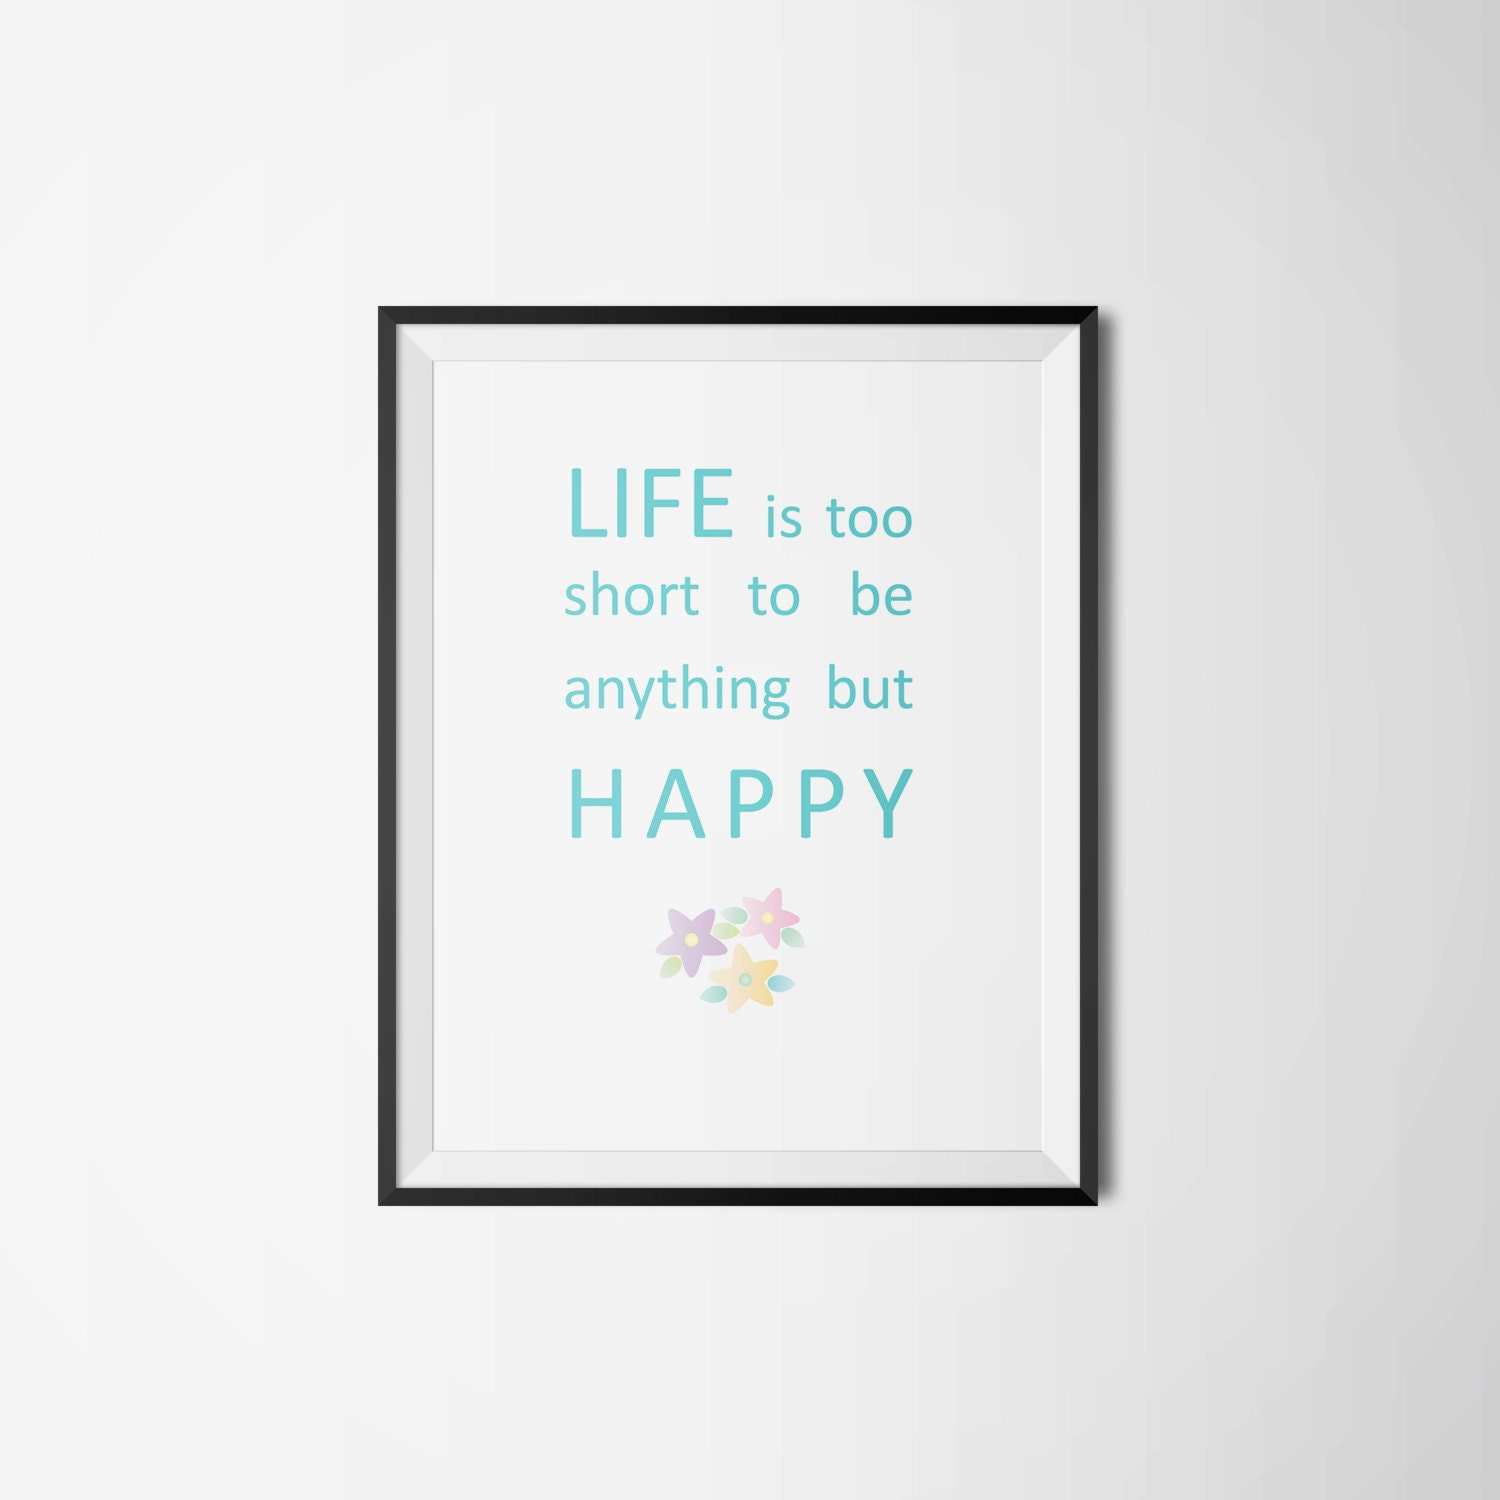 Life Is Too Short To Be Anything But Happy Quotes: Life Is Too Short To Be Anything But Happy Printable By